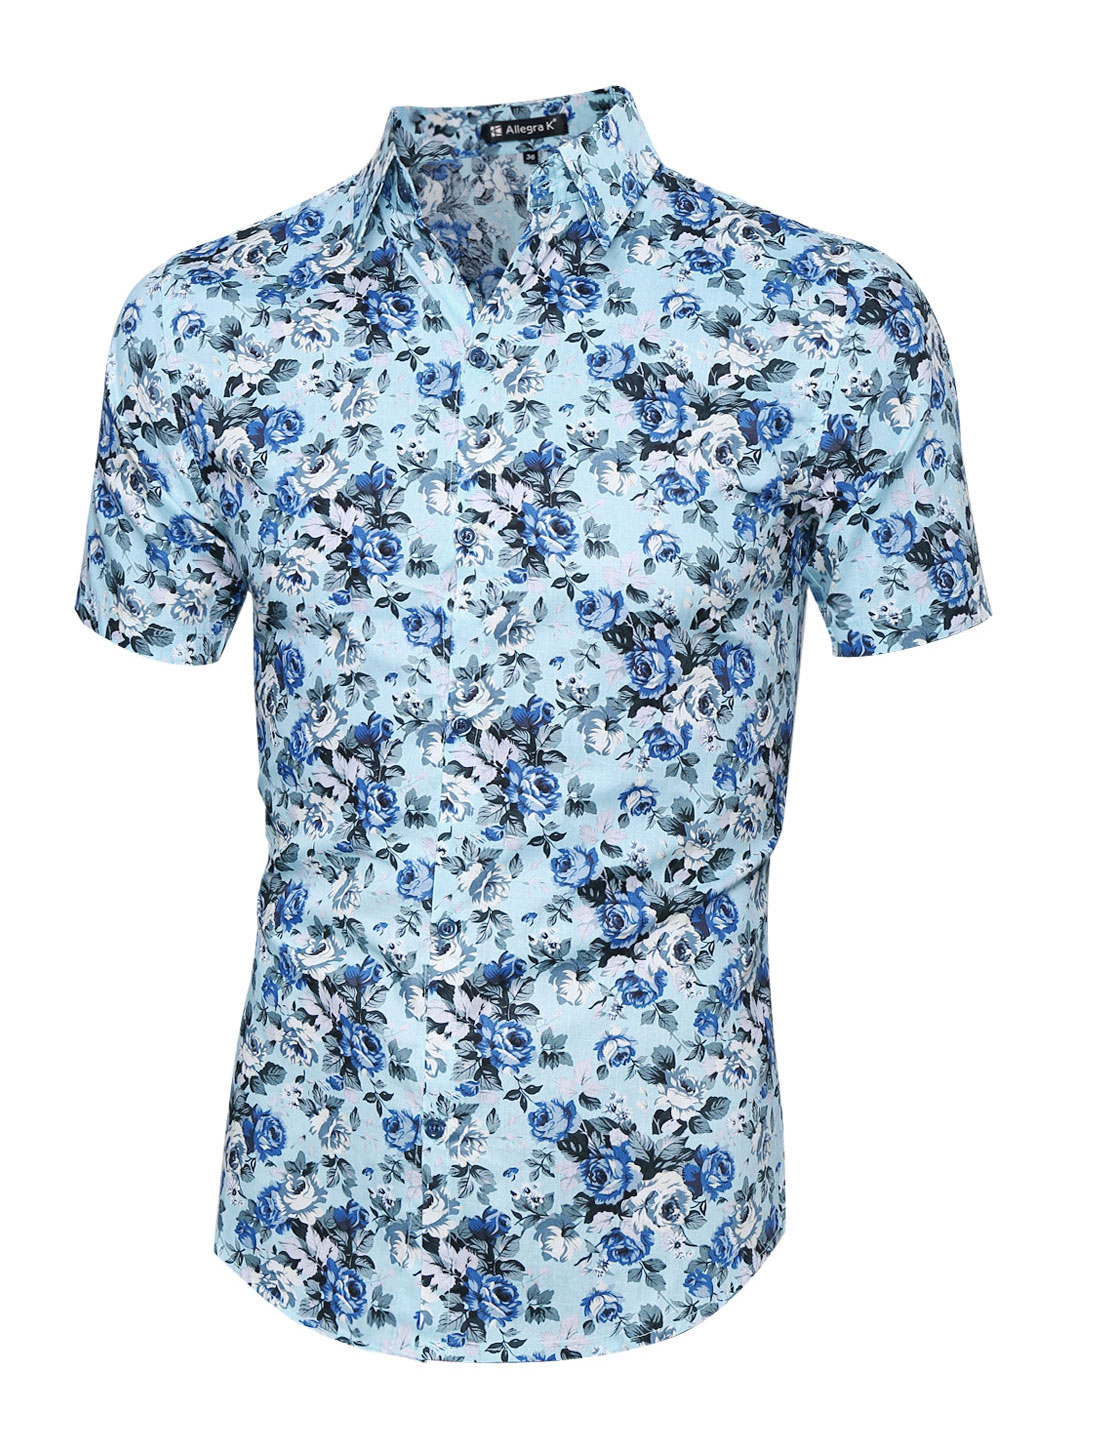 Men Short Sleeve Single Breasted Floral Prints Shirts Light Blue XL